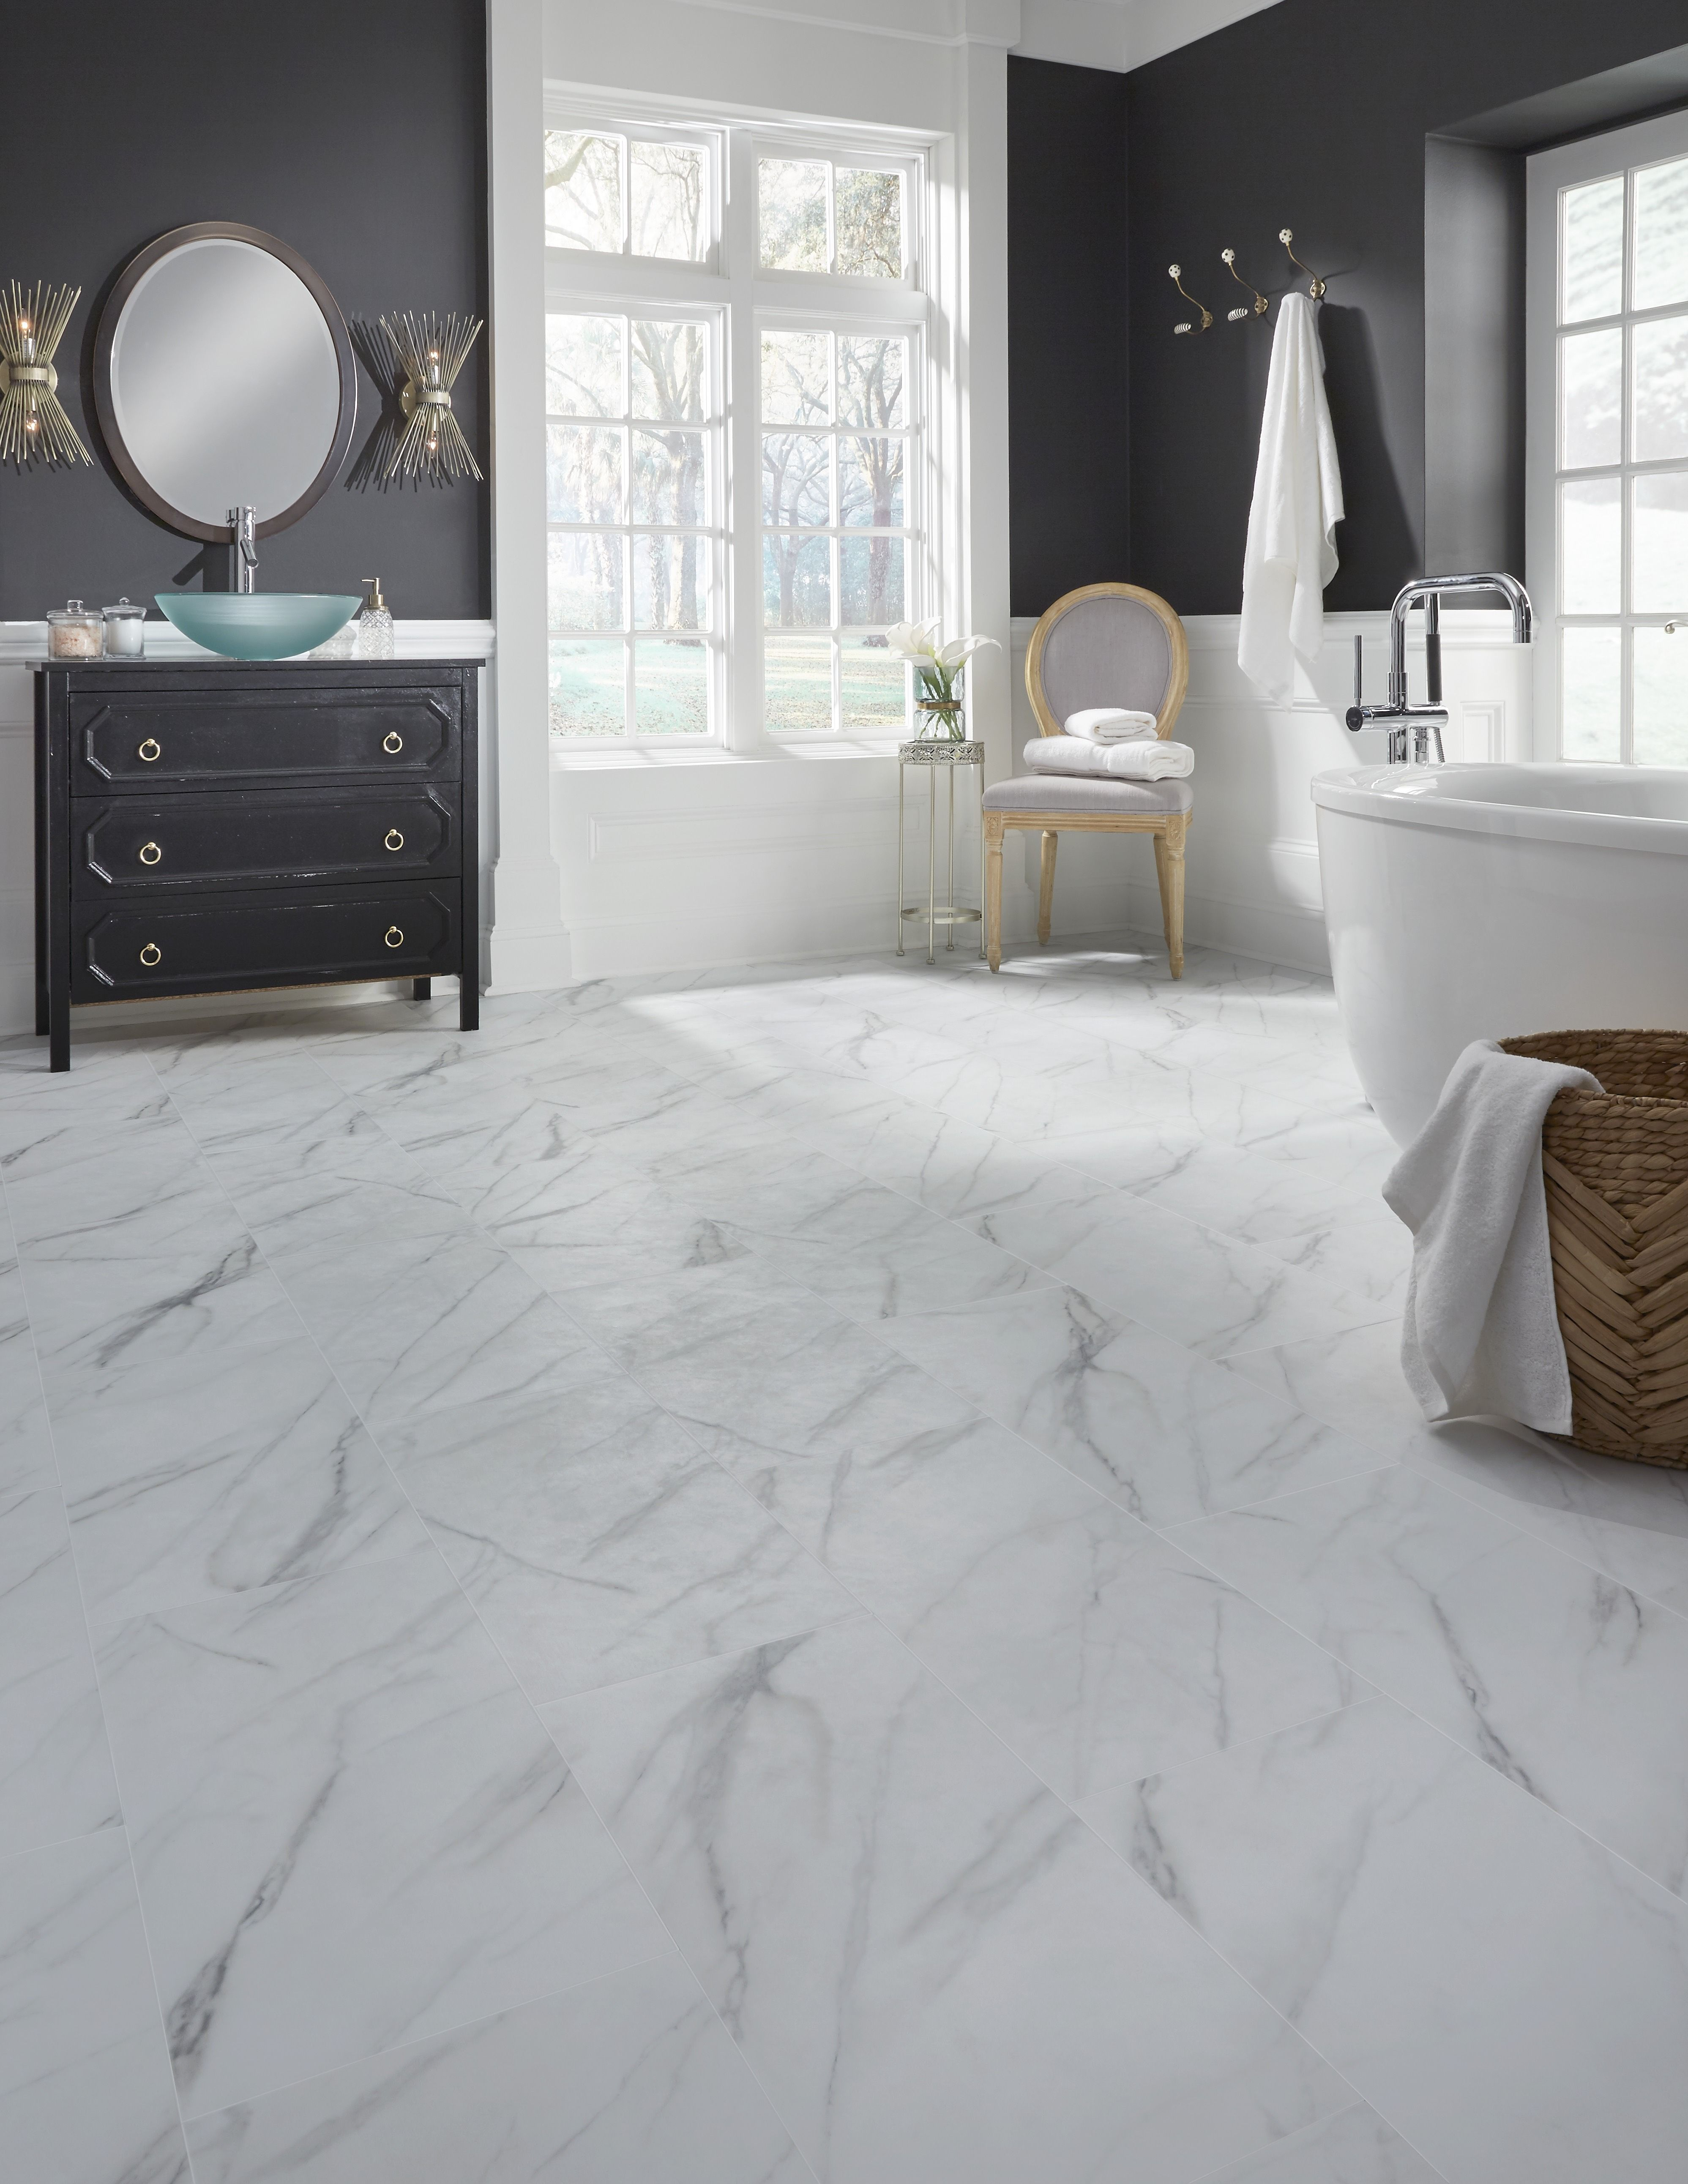 Pin By Mannington Floors On Mannington Bathrooms In 2019